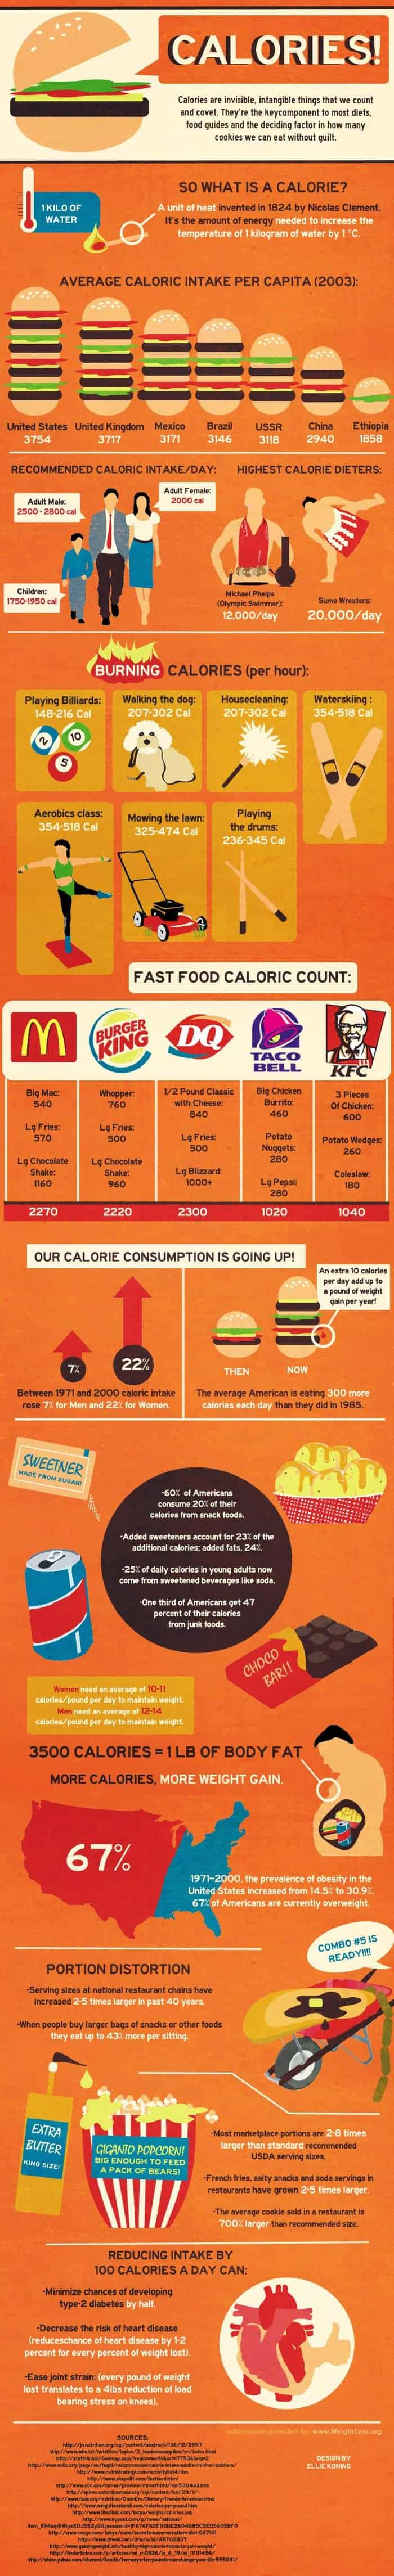 calories in food Infographic